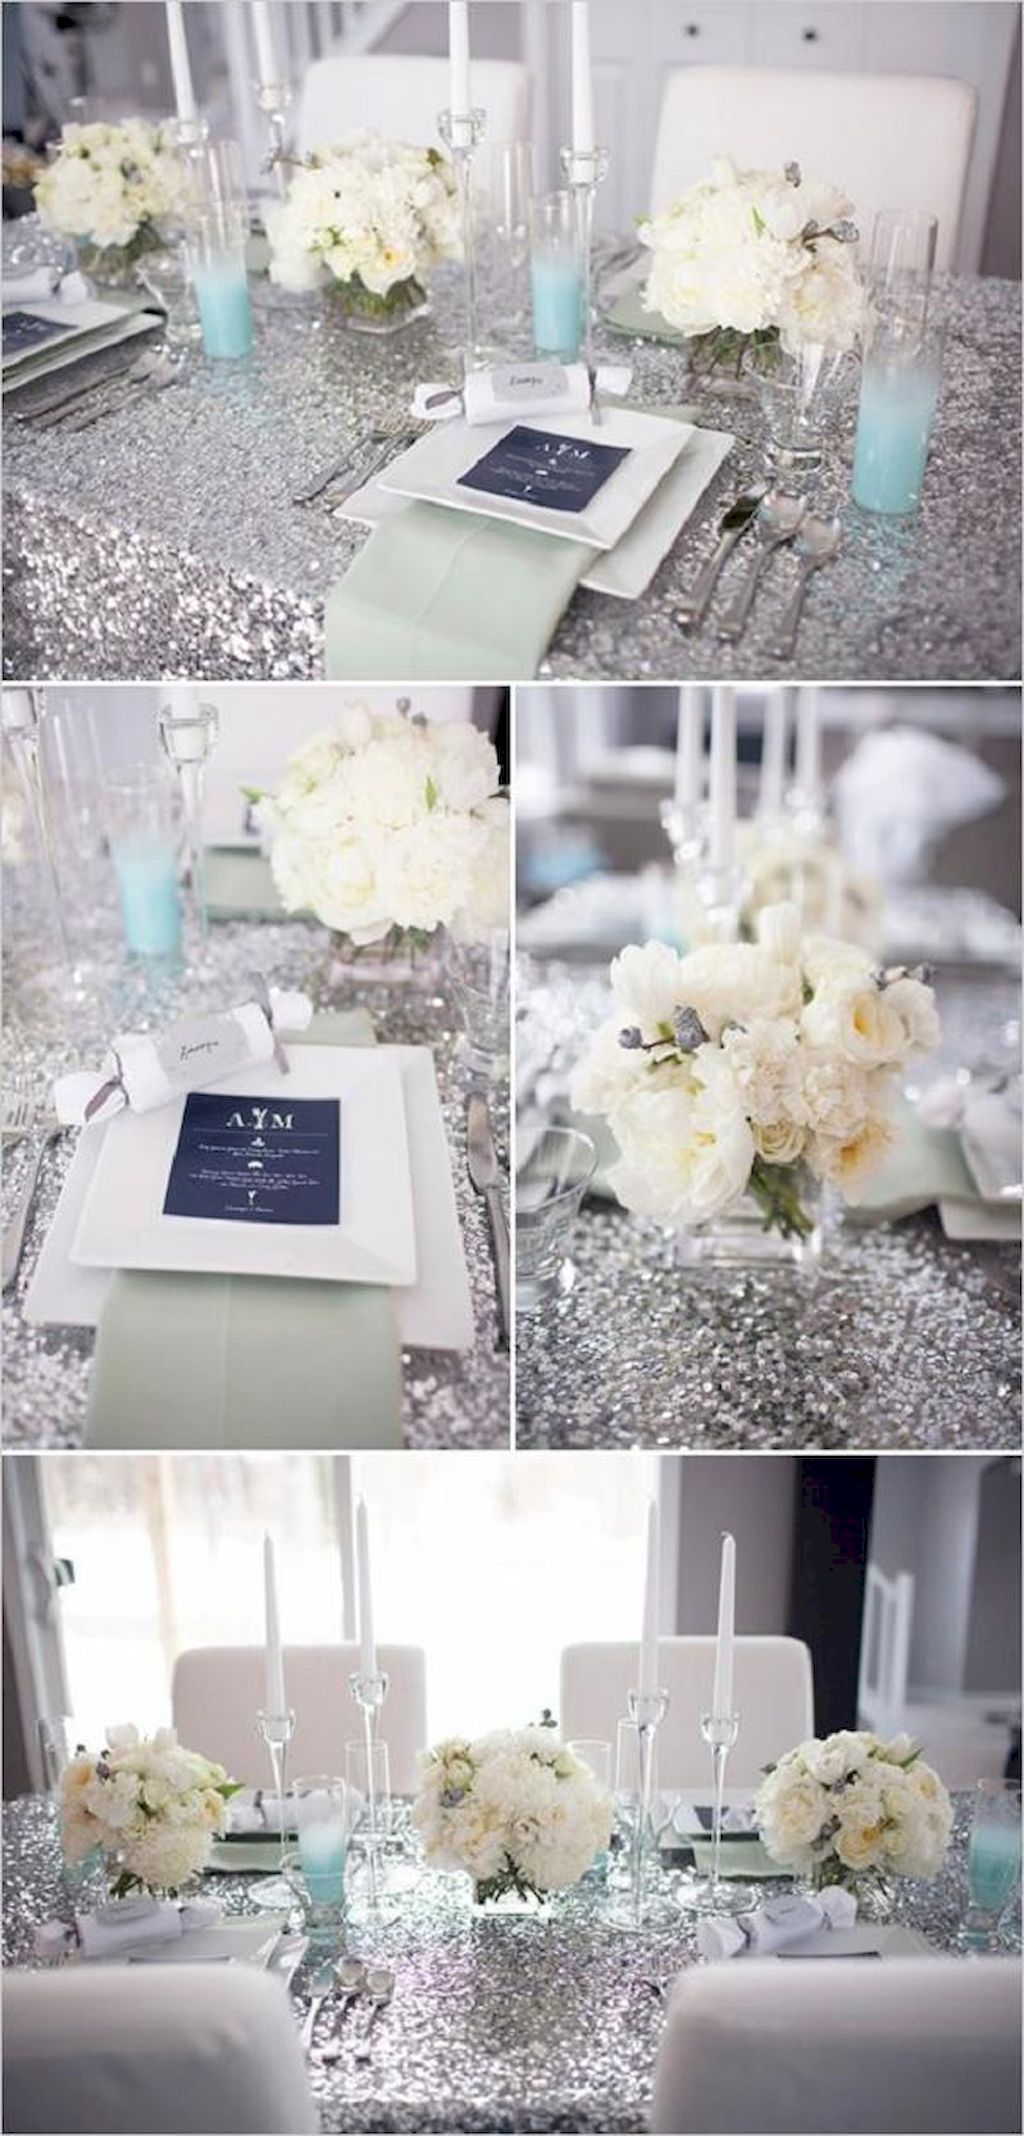 88 Luxurious Glitter Wedding Theme Ideas | Theme ideas and Weddings